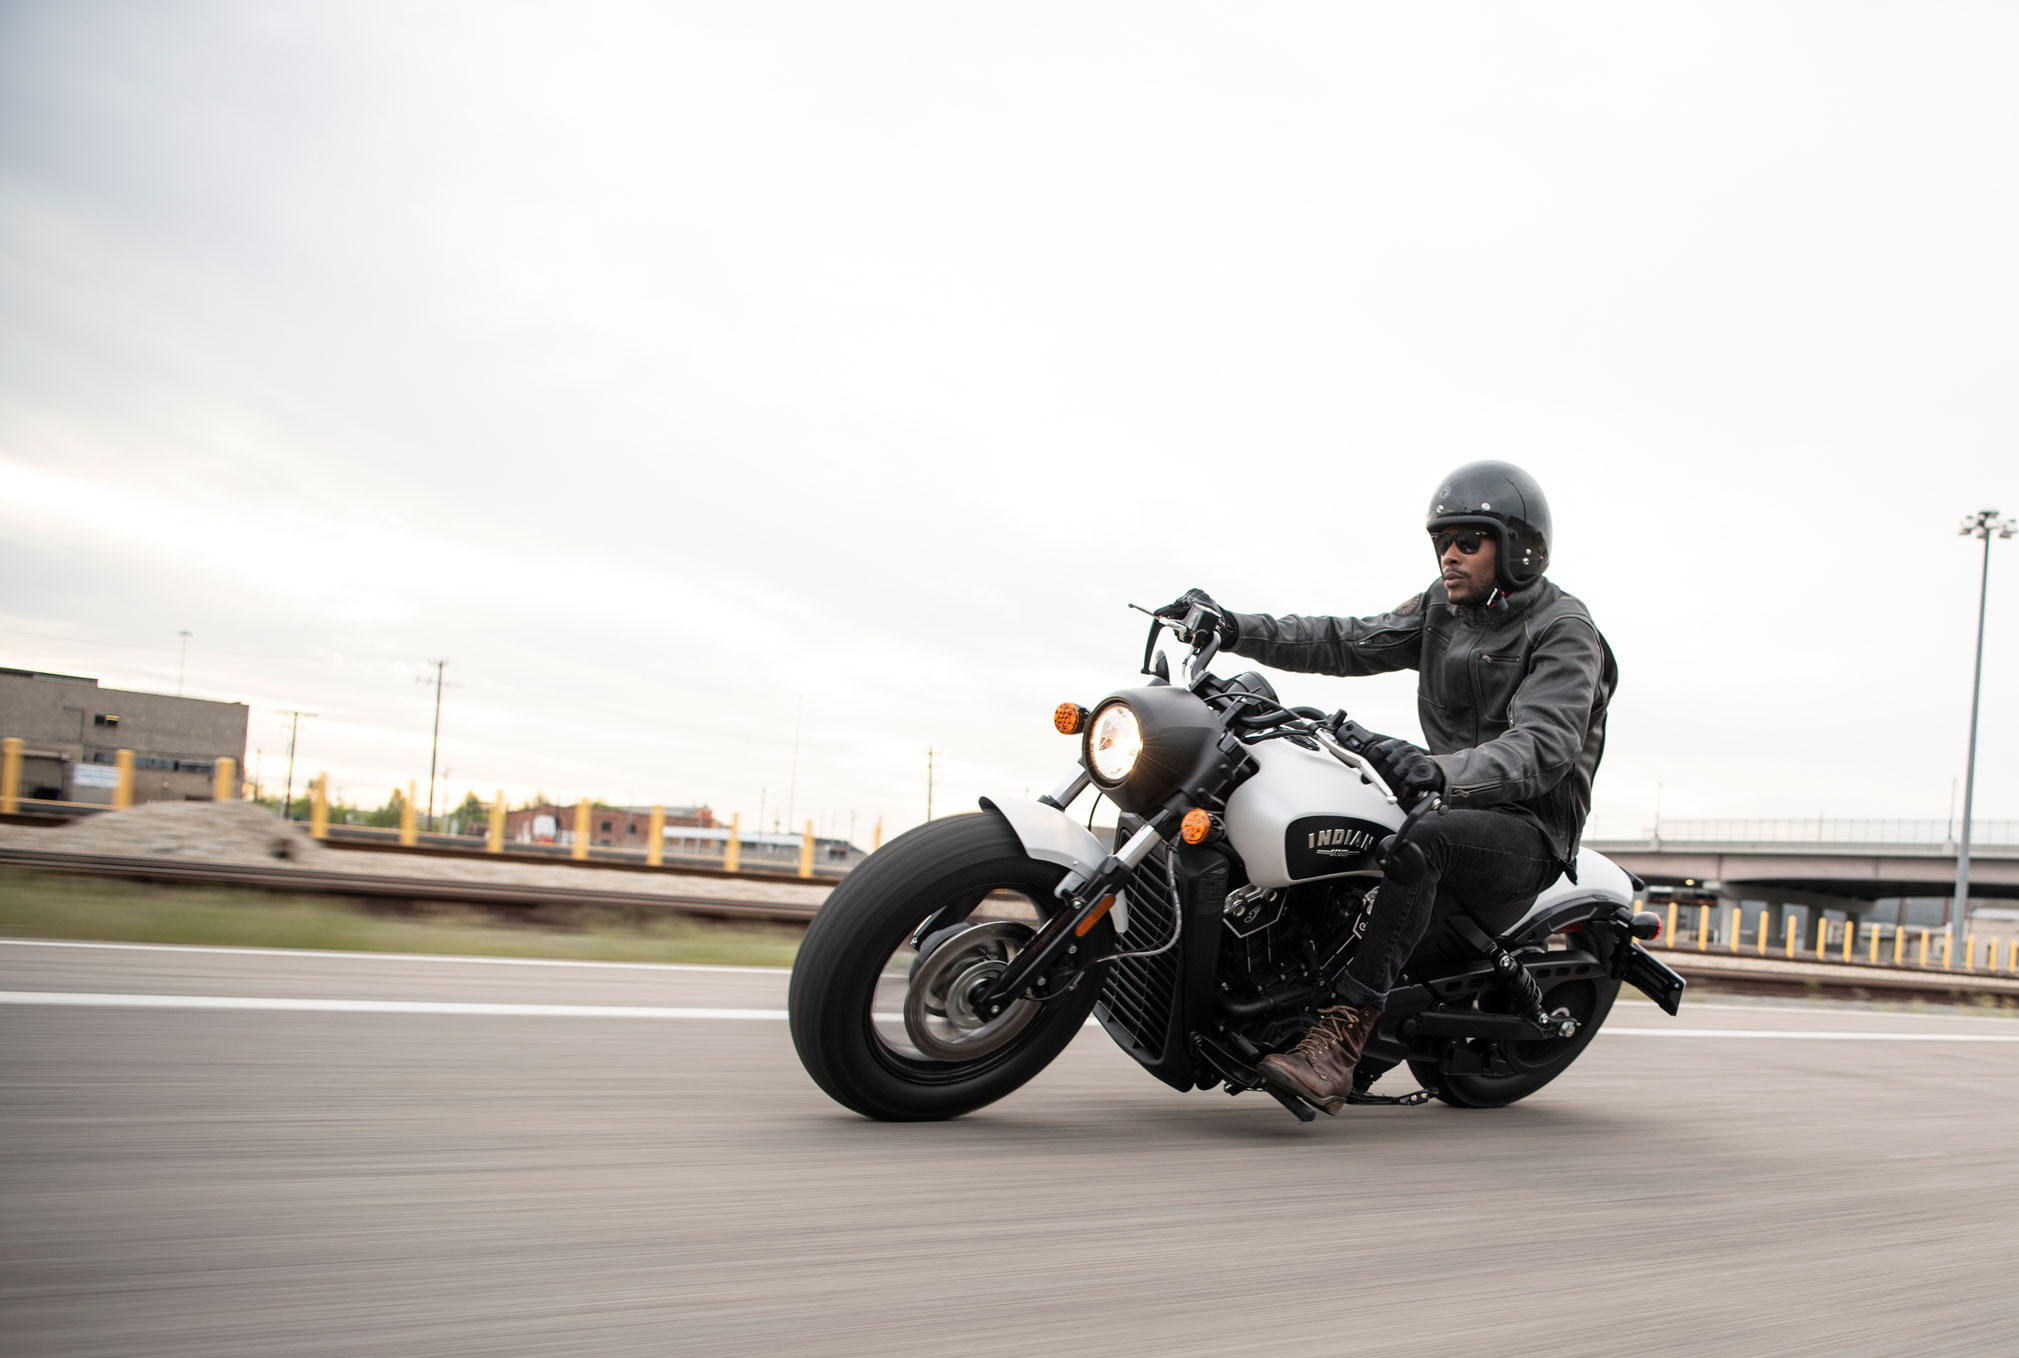 2019 Indian Scout Bobber Guide Total Motorcycle